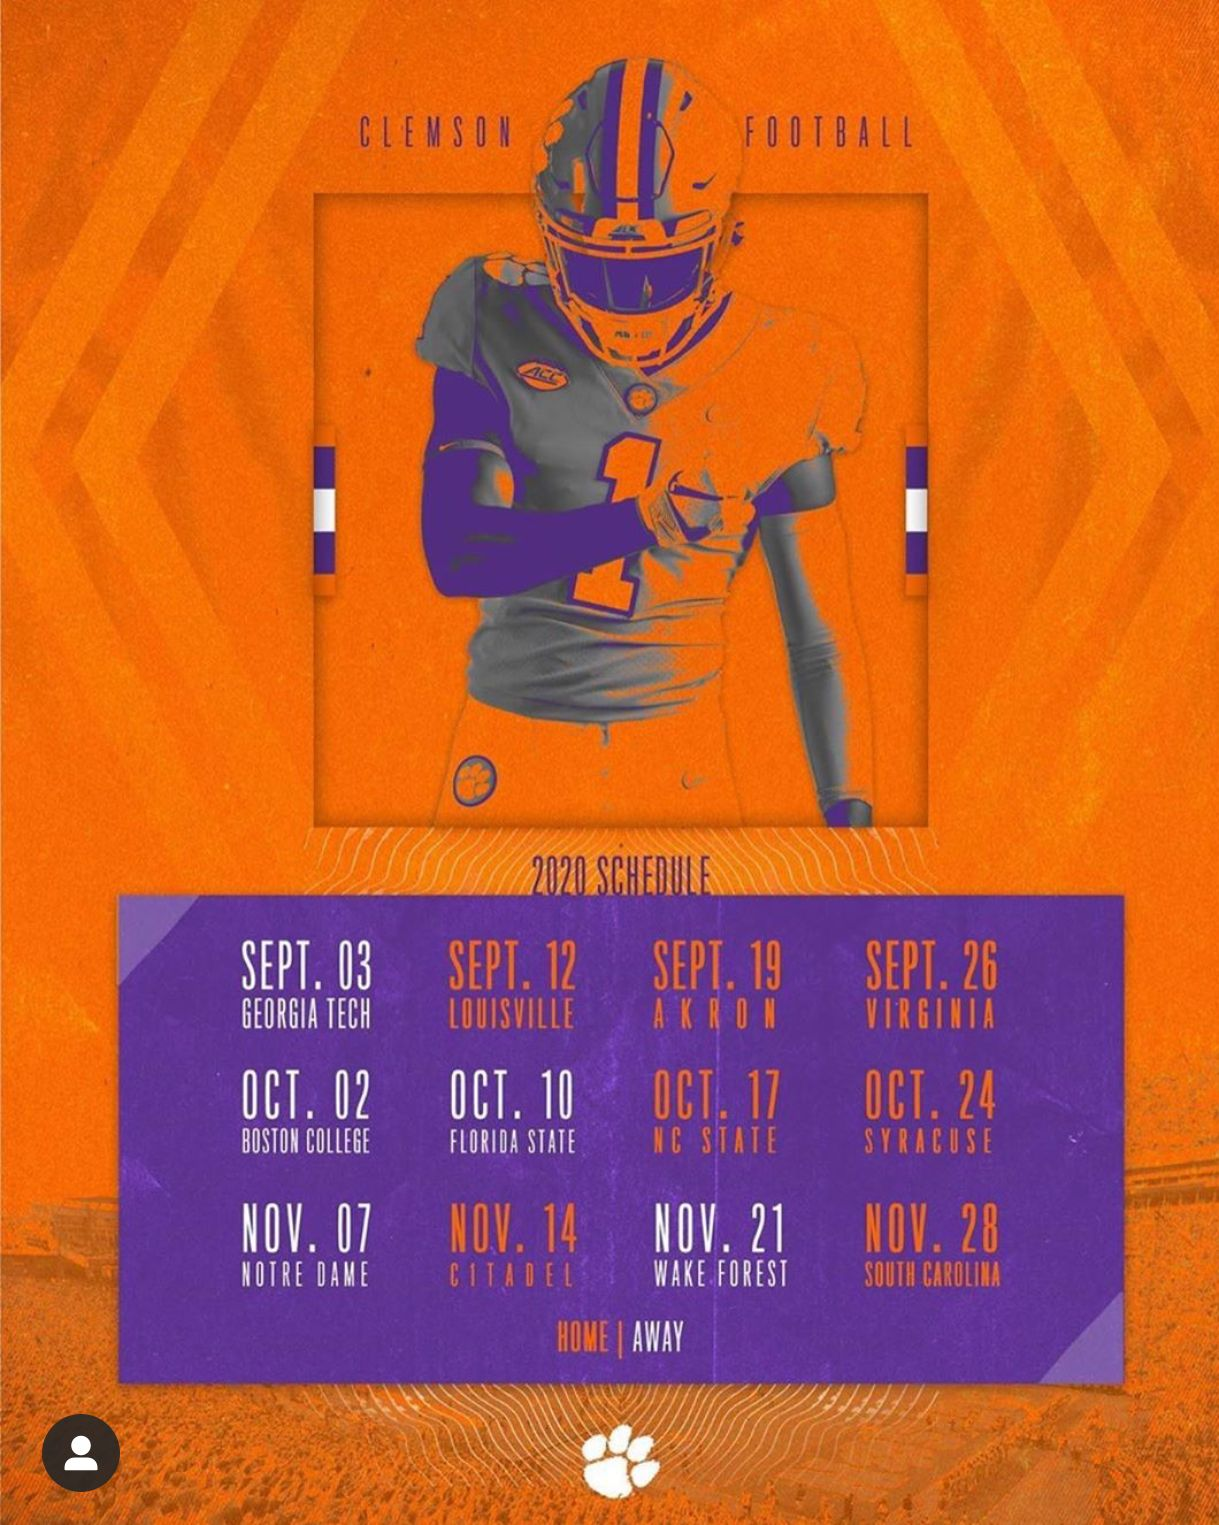 2020 Clemson Football Schedule Is Out In 2020 Clemson Football Schedule Clemson Clemson Football